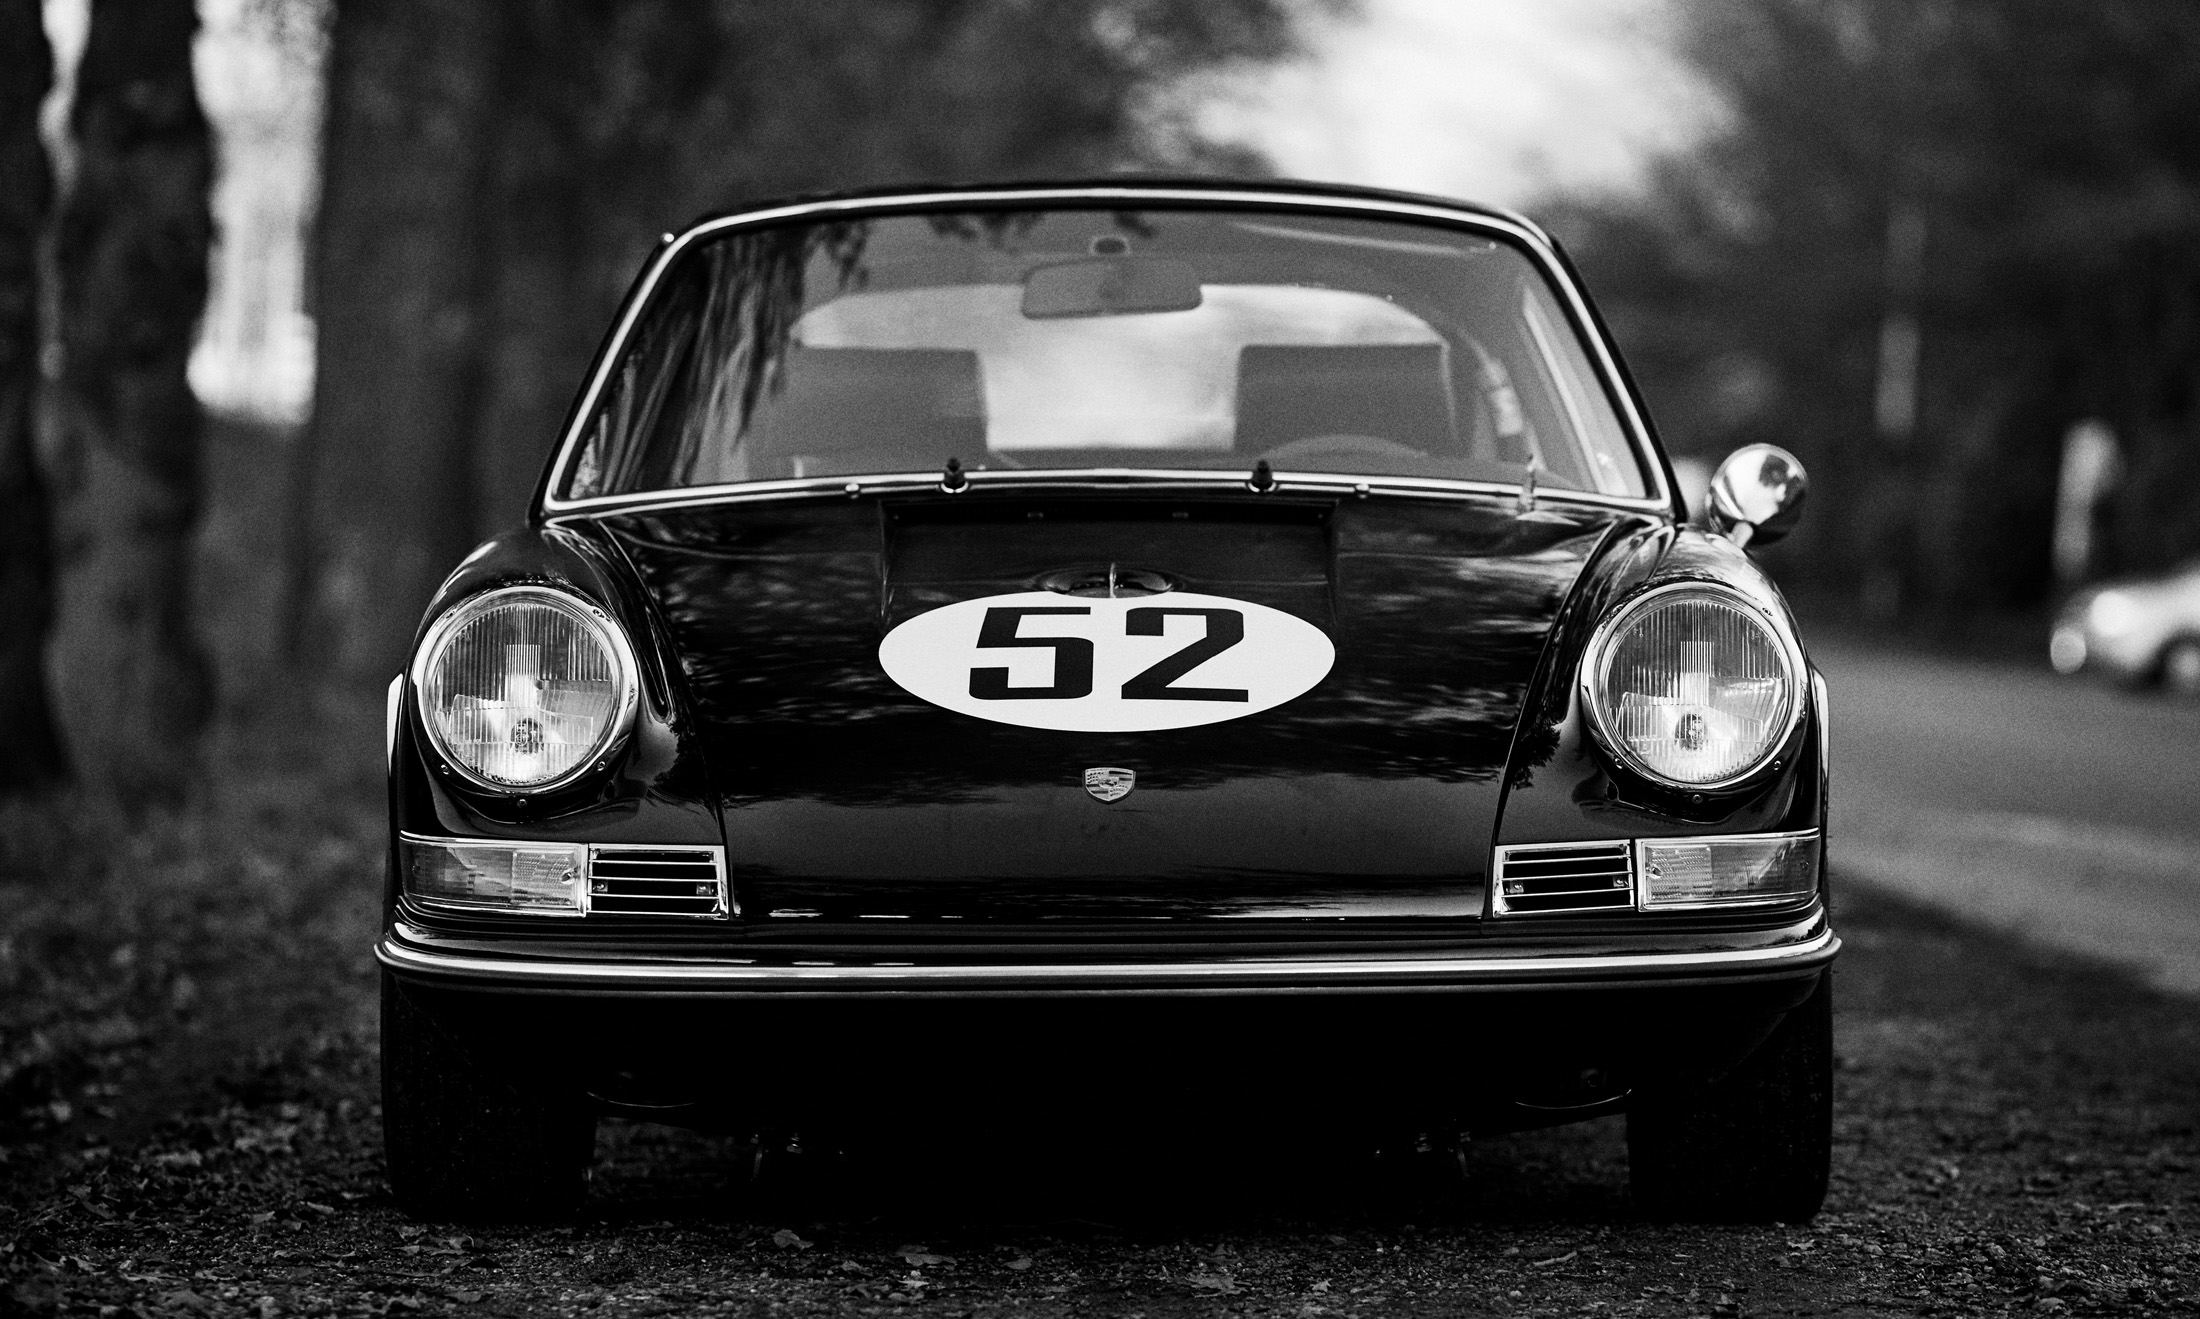 Flatsix Classics, located in Richmond, British Columbia, restores three to four vintage vehicles per year, including this 1970 Porsche 911T.